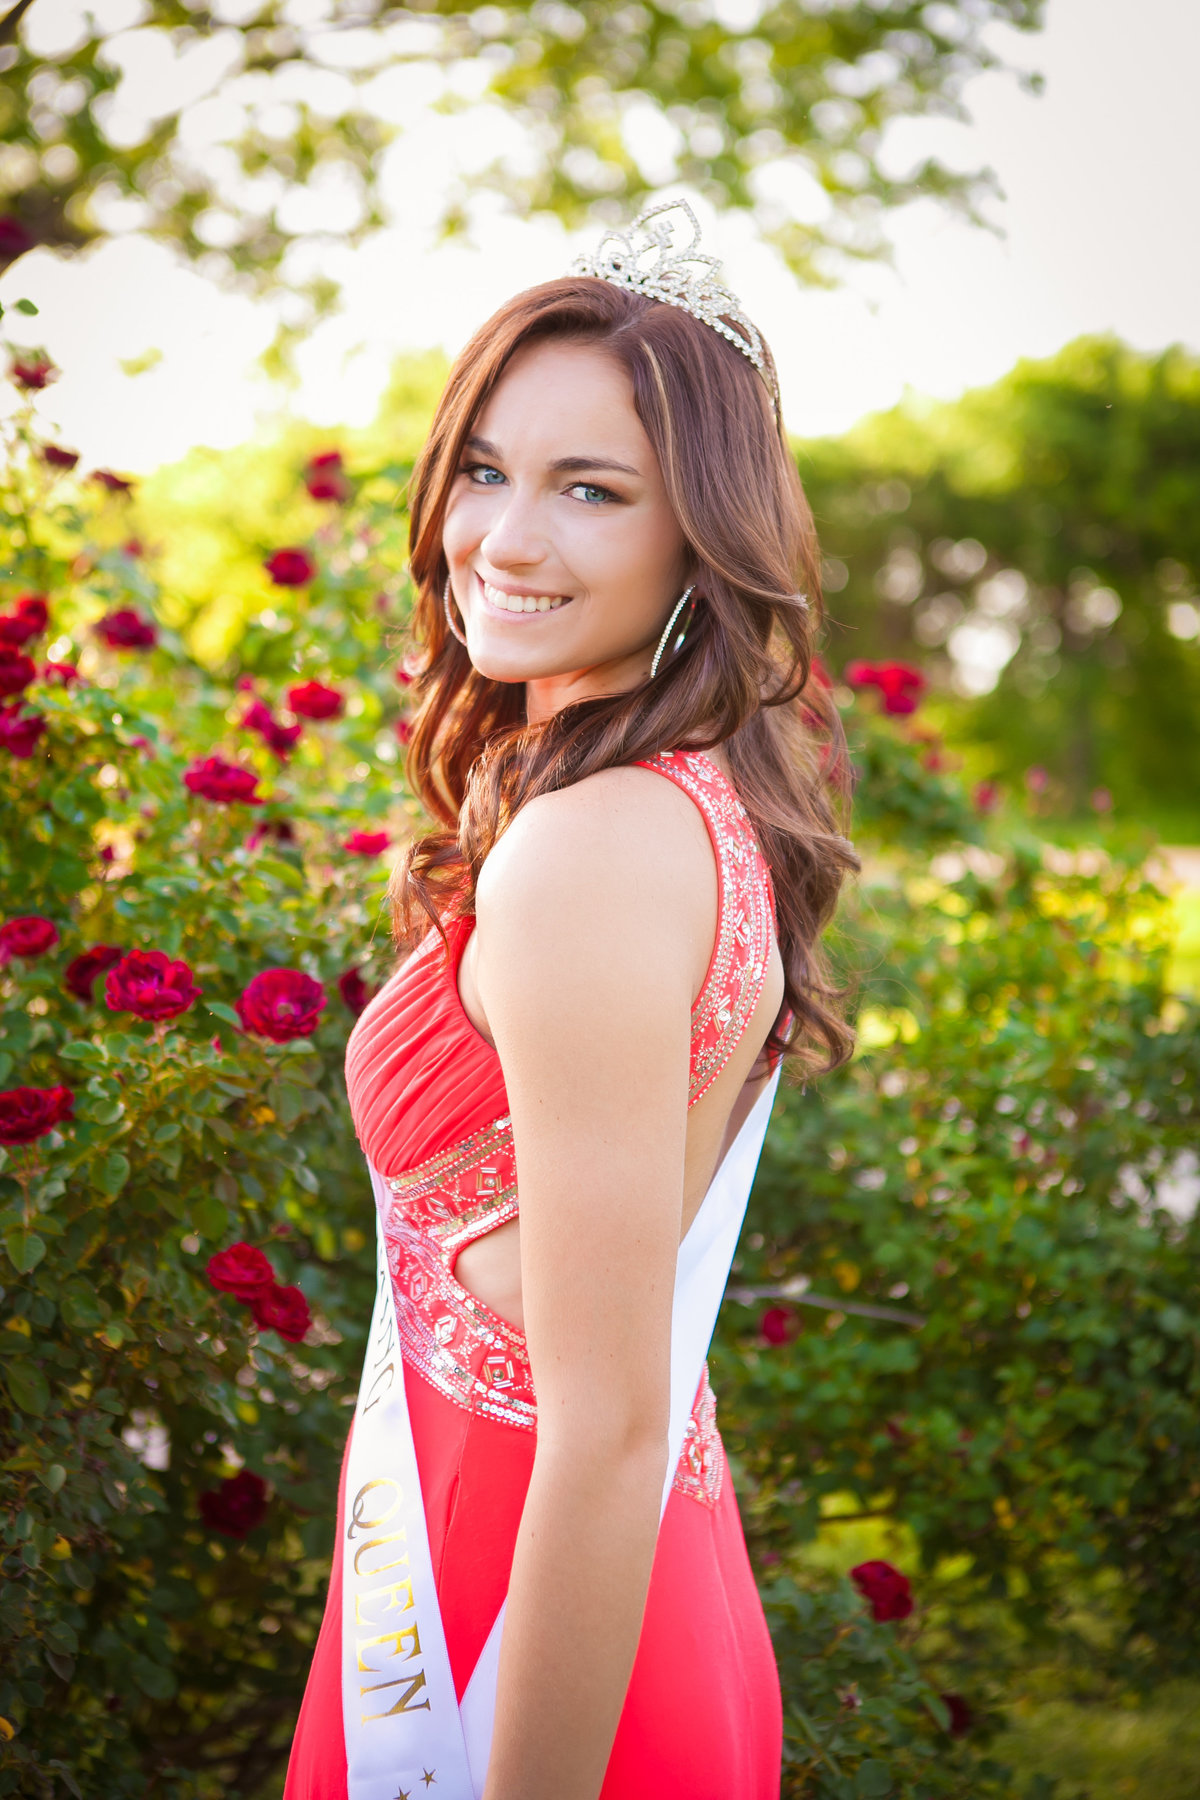 High School homeconing queen senior portraits in flowers